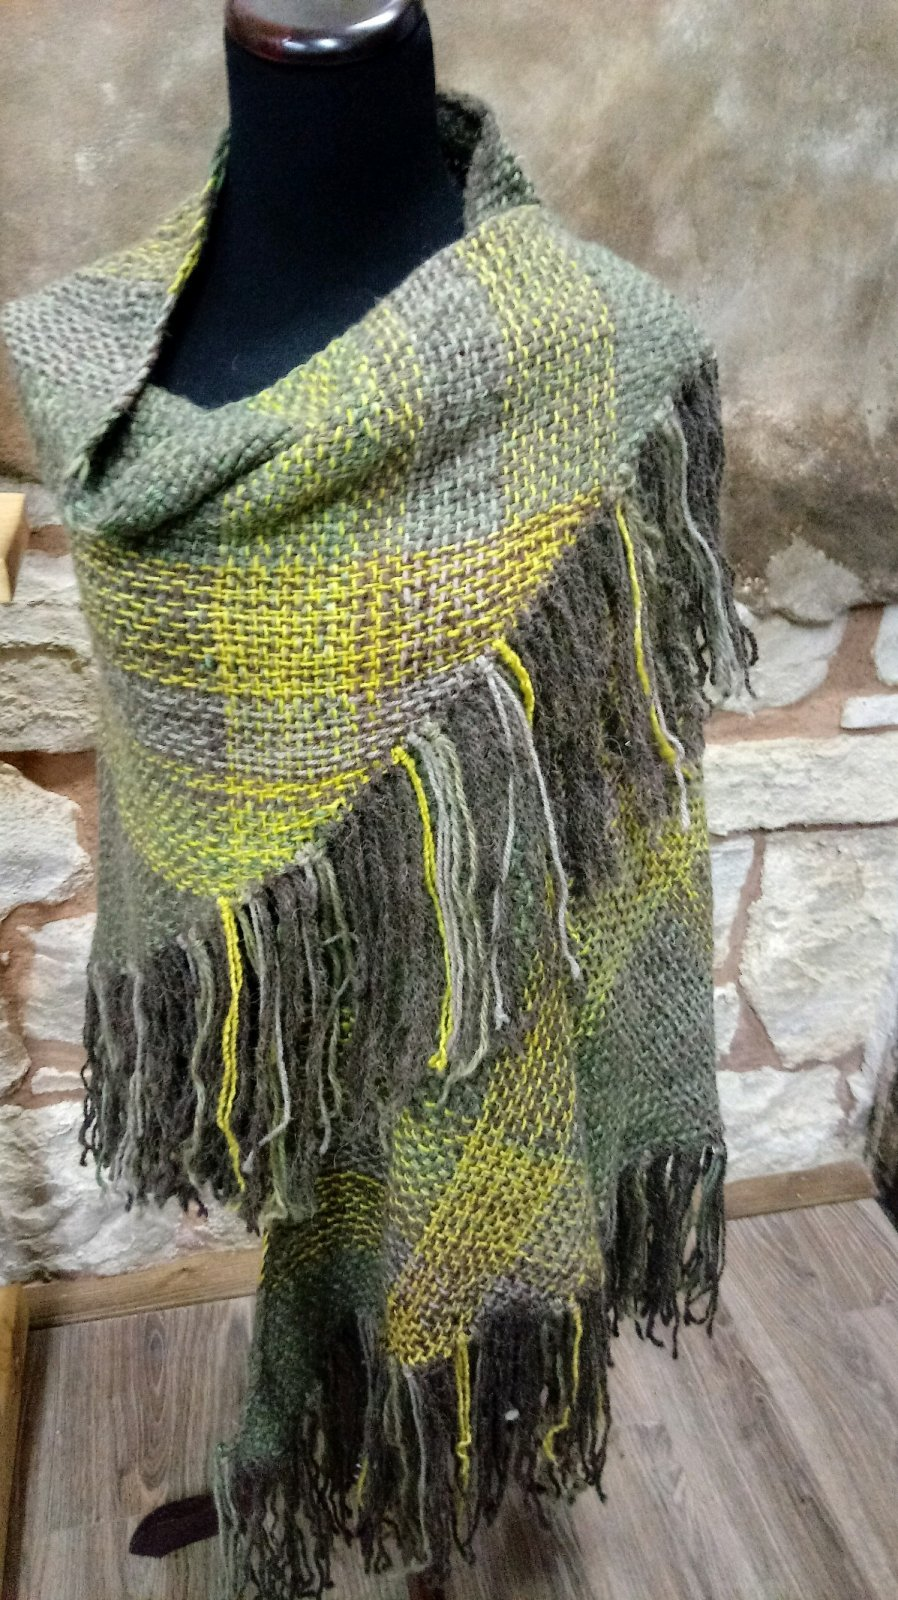 Woven Bison Shawl - Summer in the Park